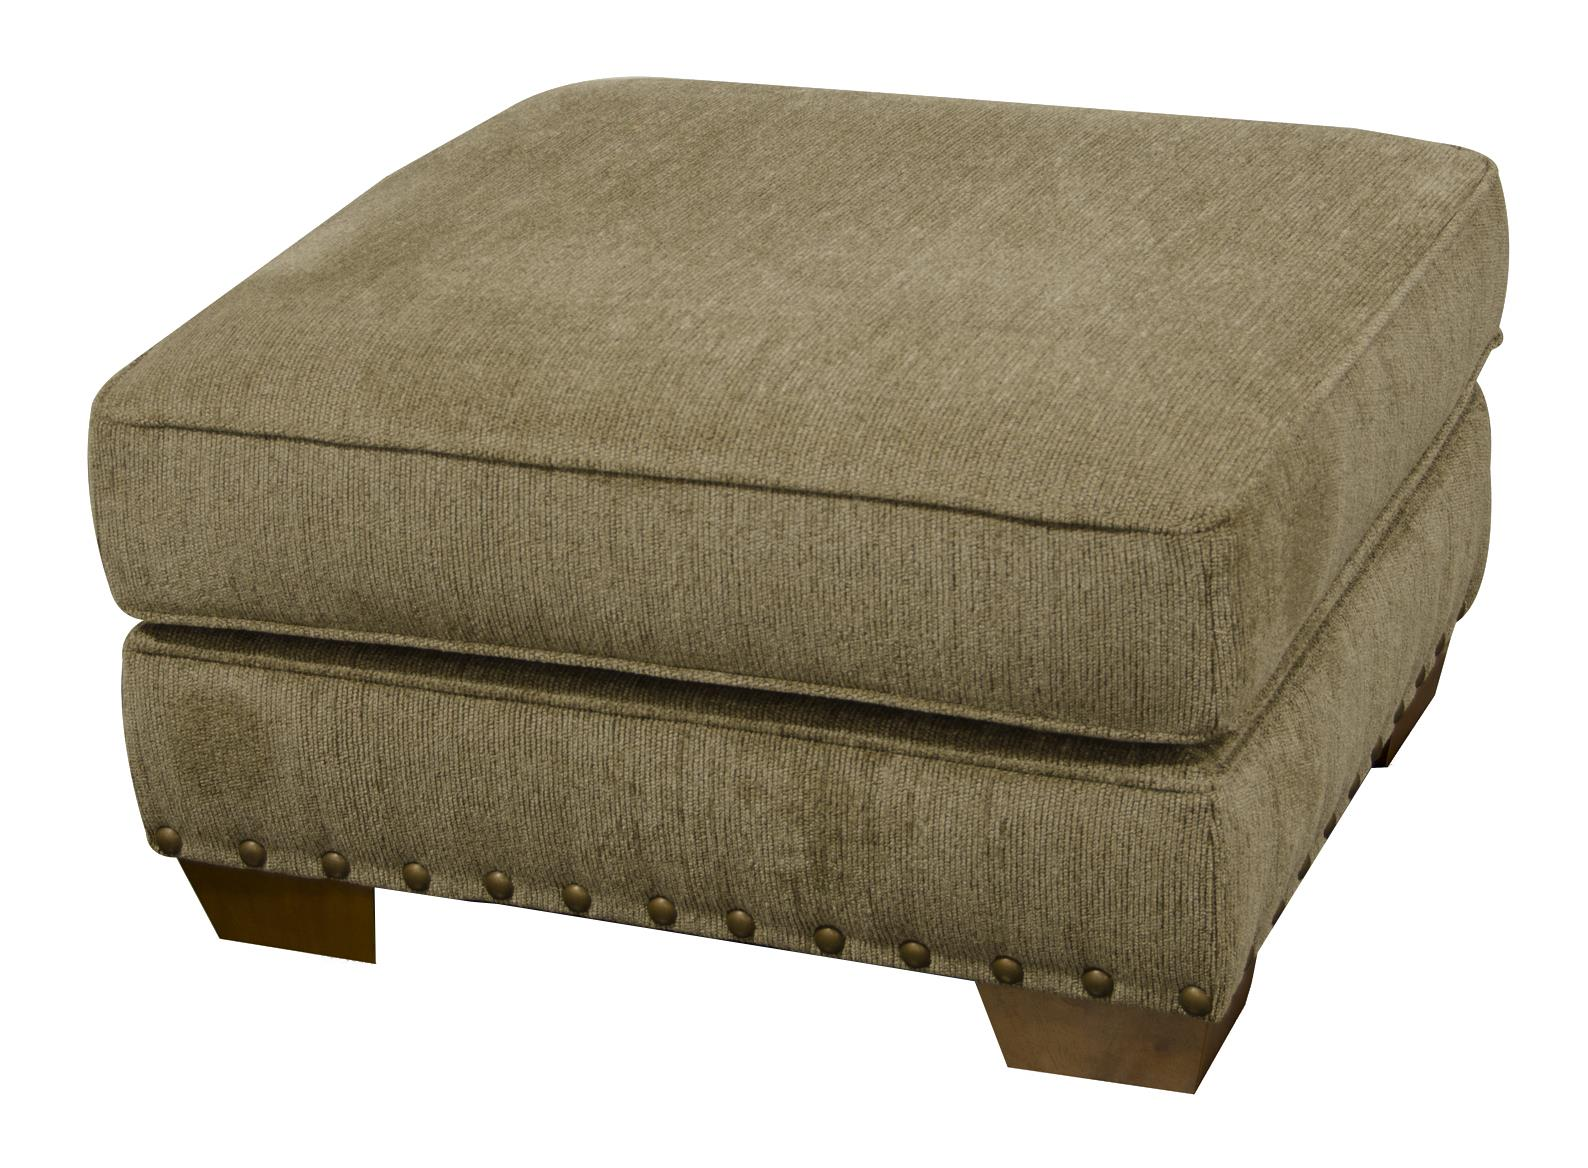 England Walters Ottoman with Nailhead Trim - Item Number: 6637N-6844